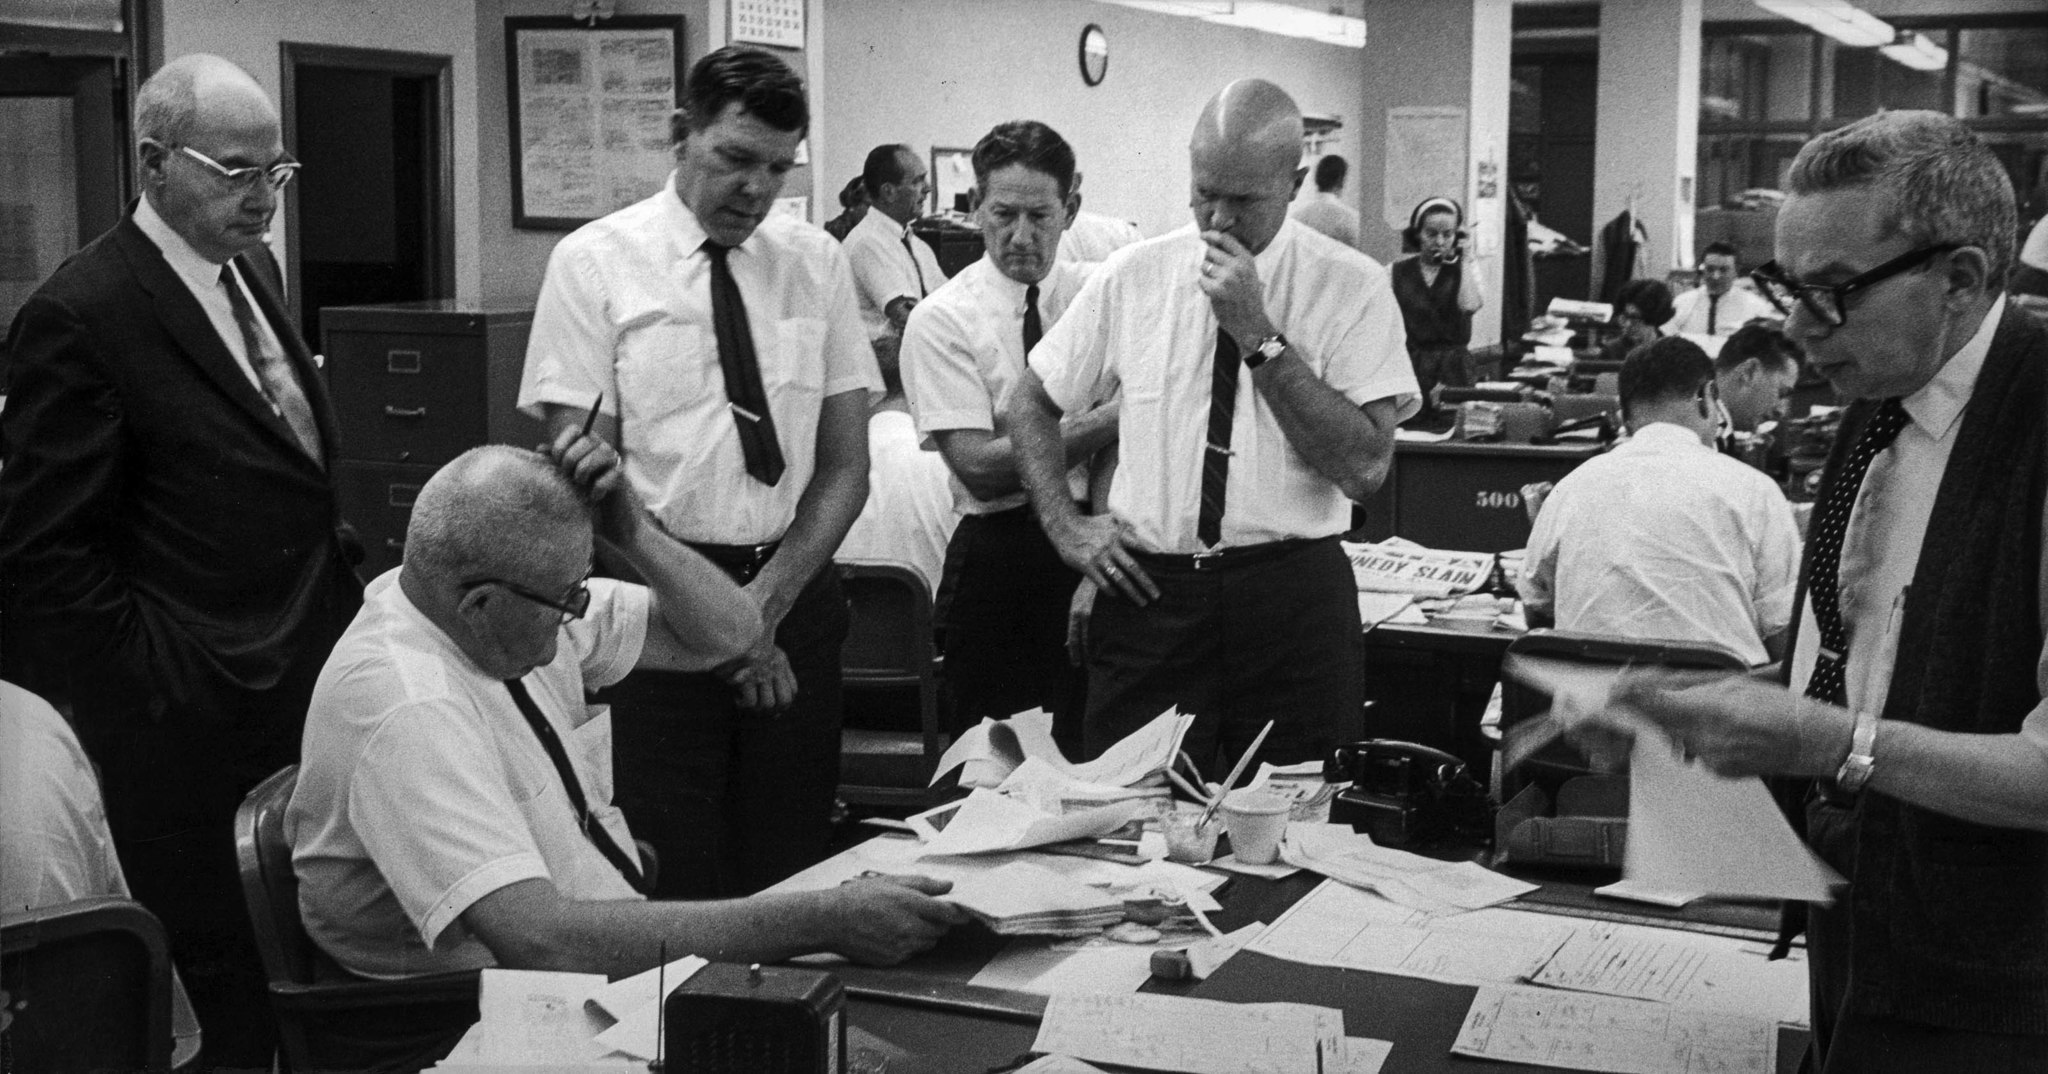 Los Angeles Times newsroom at 11:35 a.m. on Friday, Nov. 22, 1963. A copy of the Los Angeles Herald-